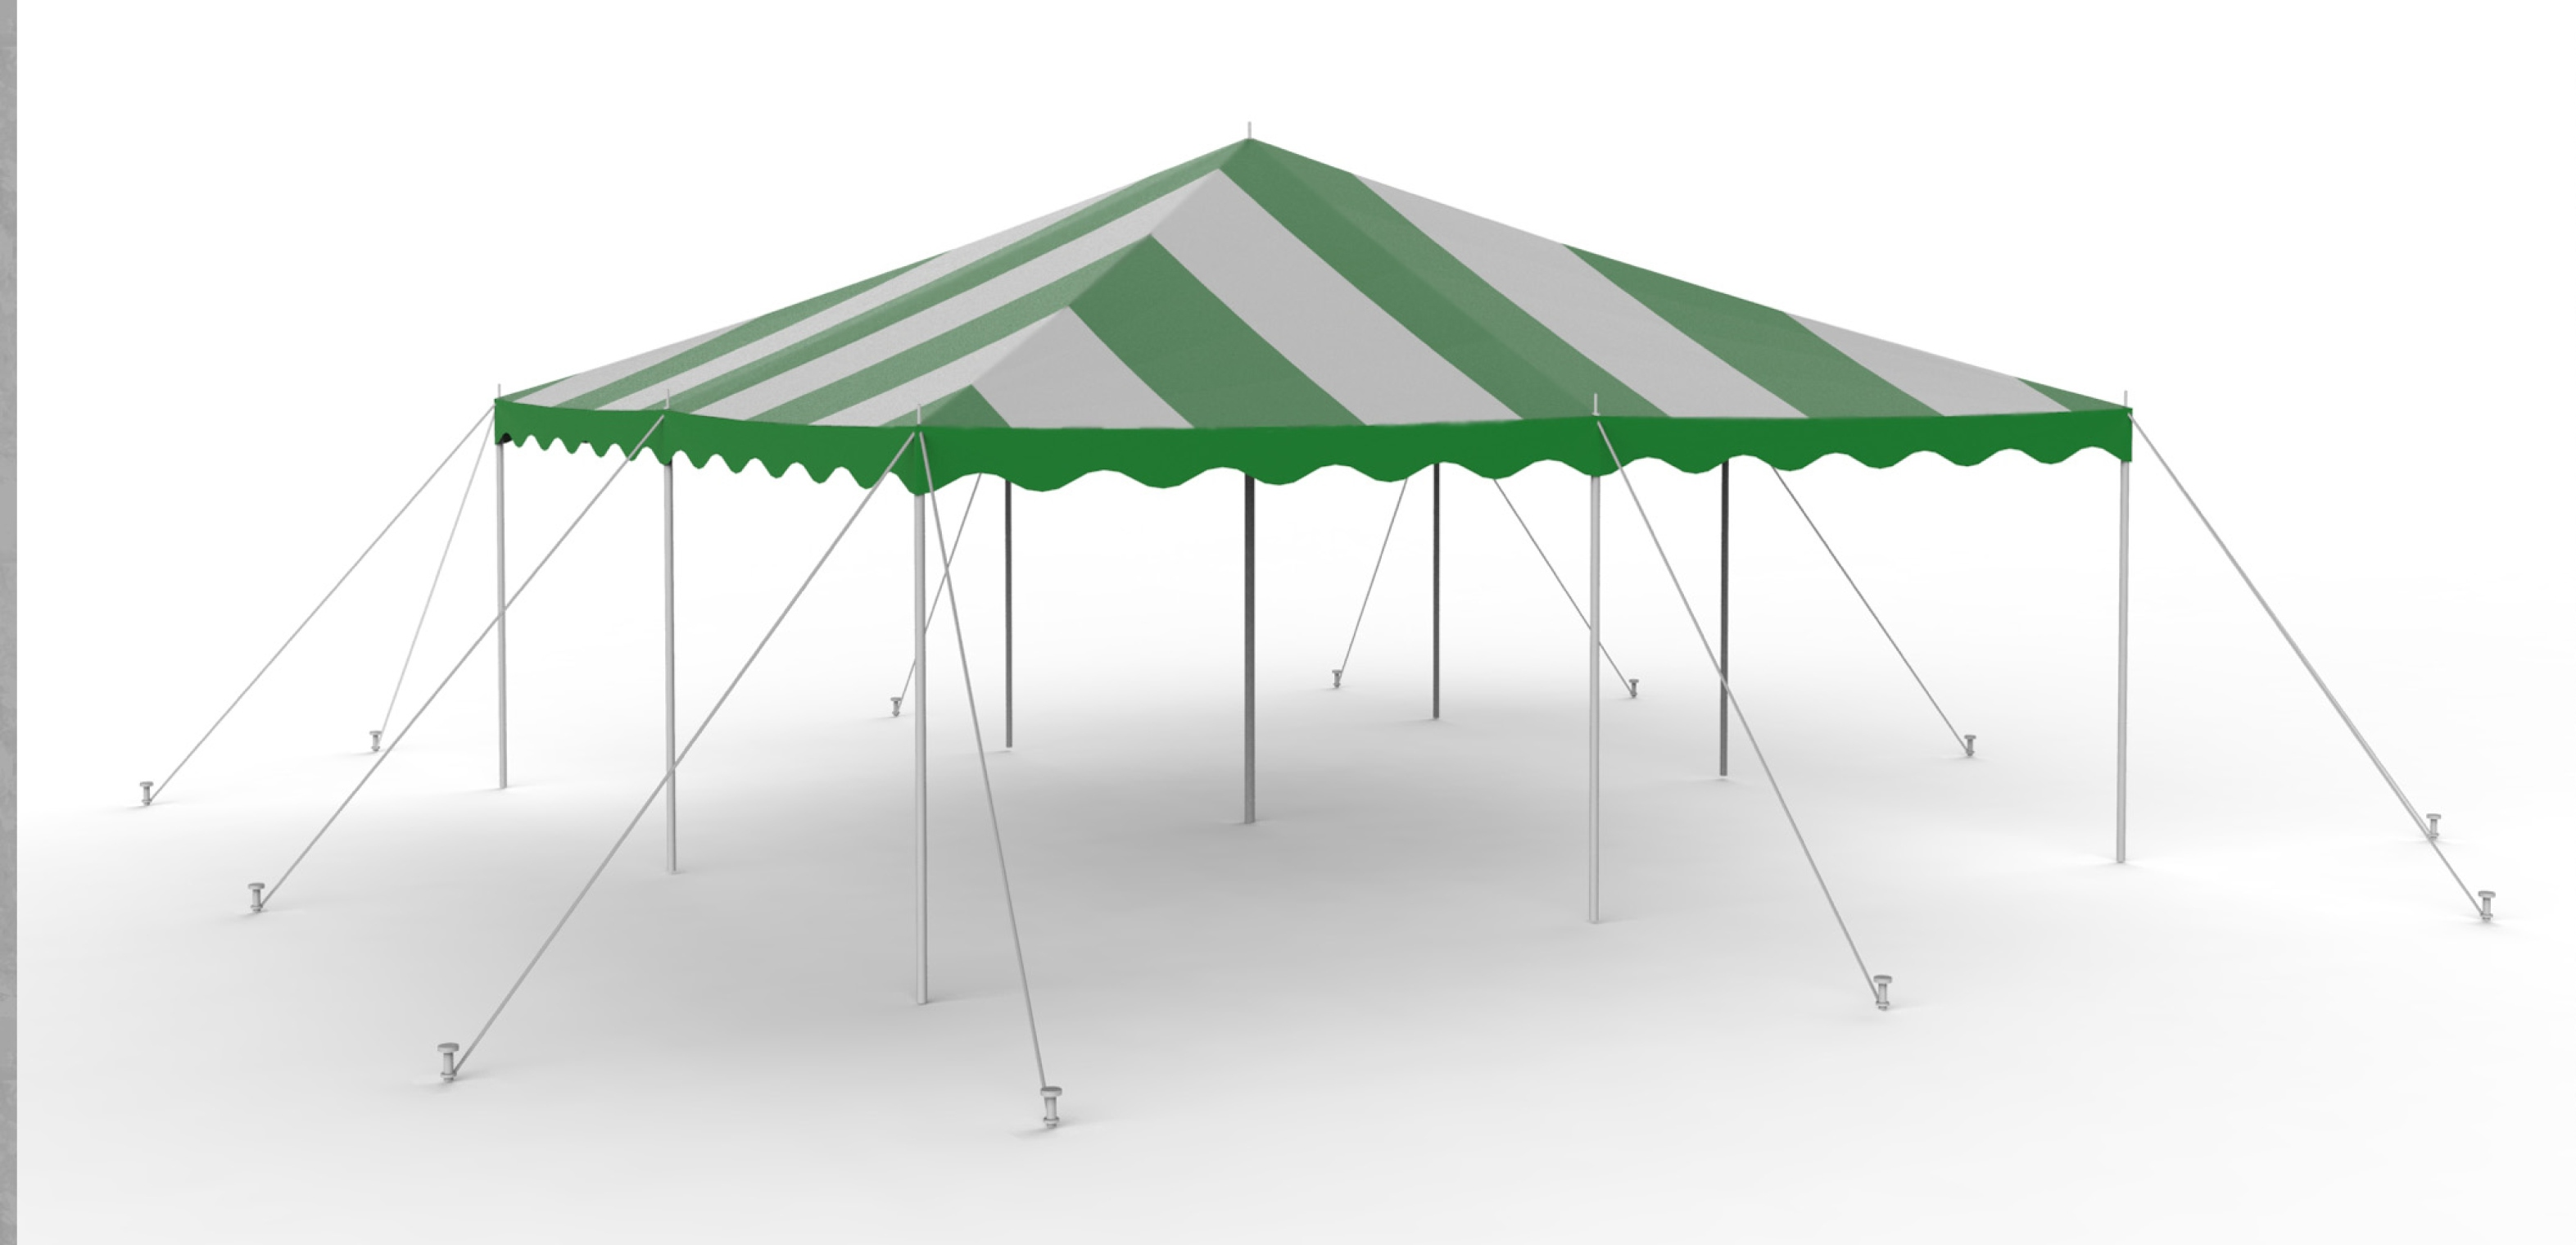 16x16 Green-White Staked Canopy